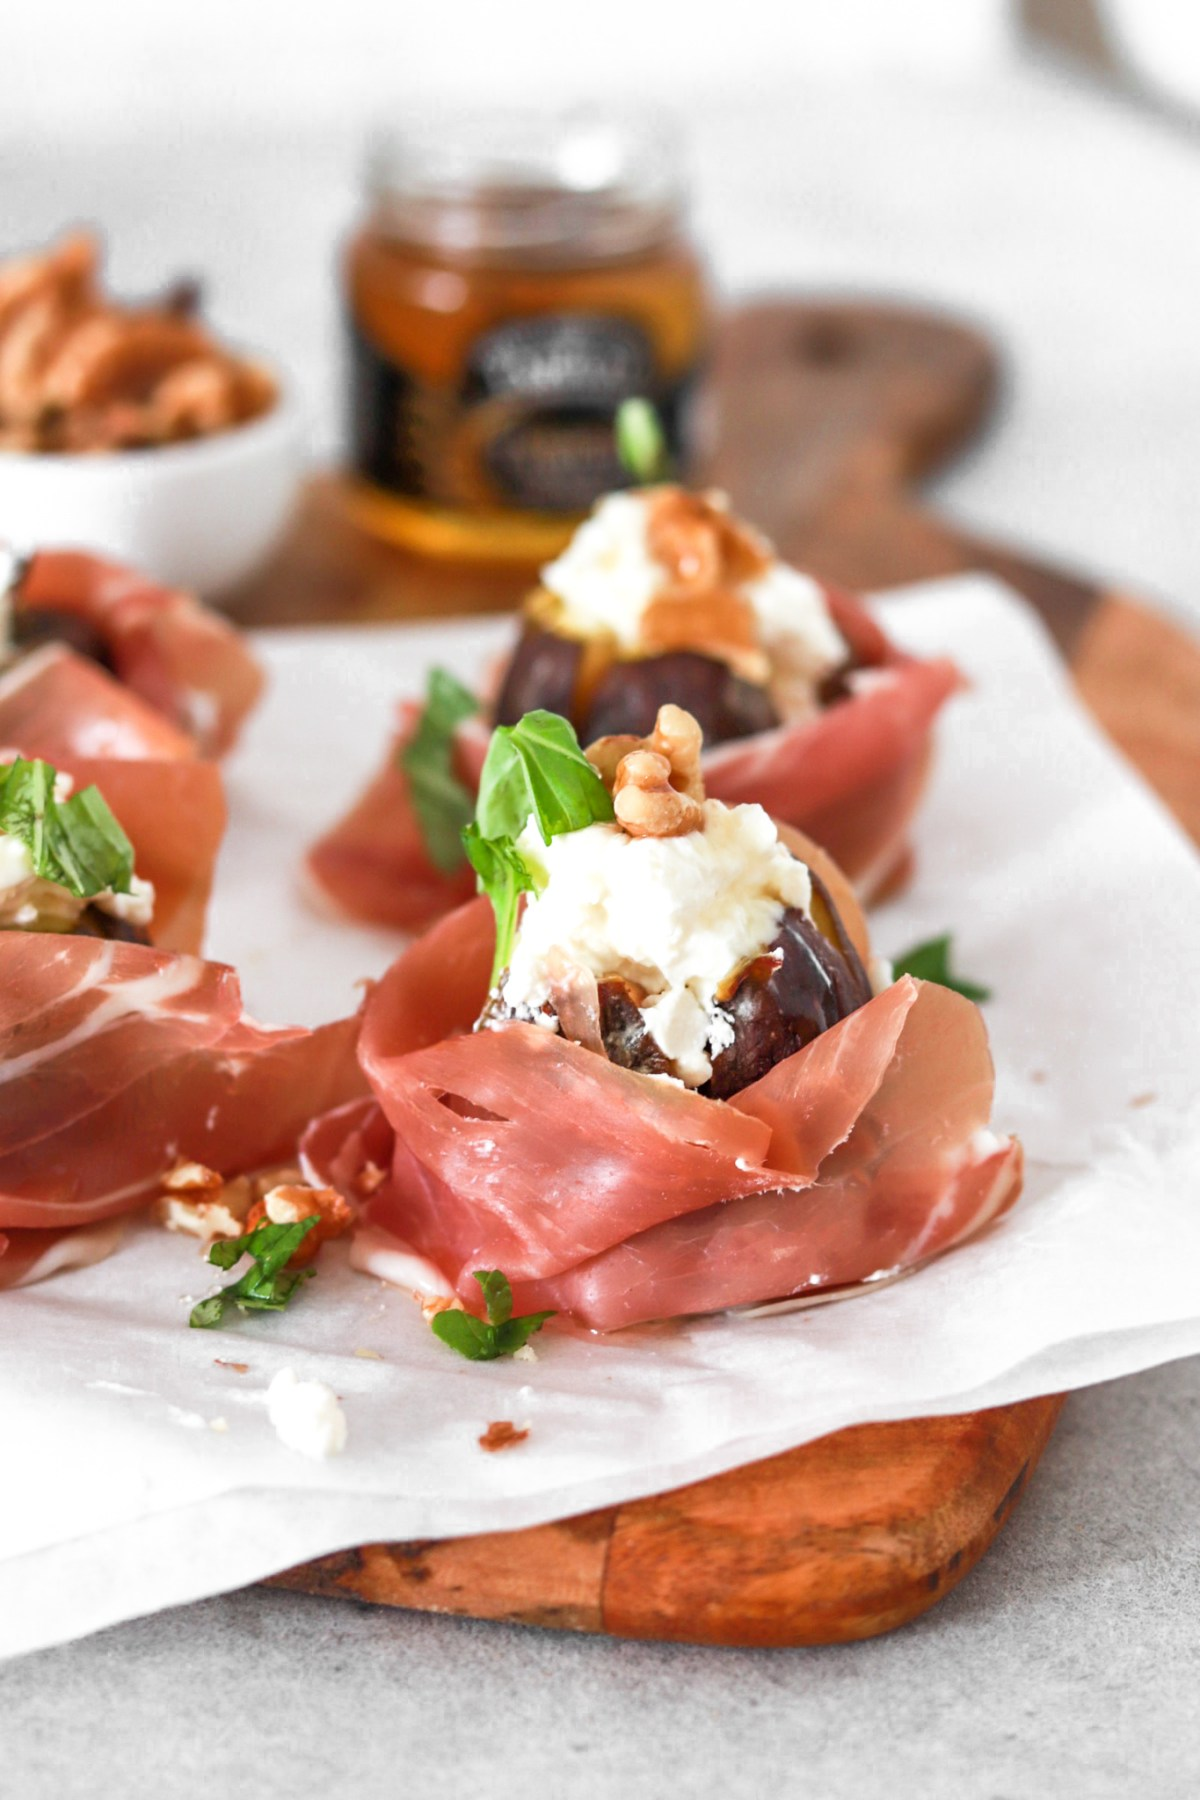 Fresh Figs with Goat Cheese & Prosciutto (Gluten & Grain Free) From Front